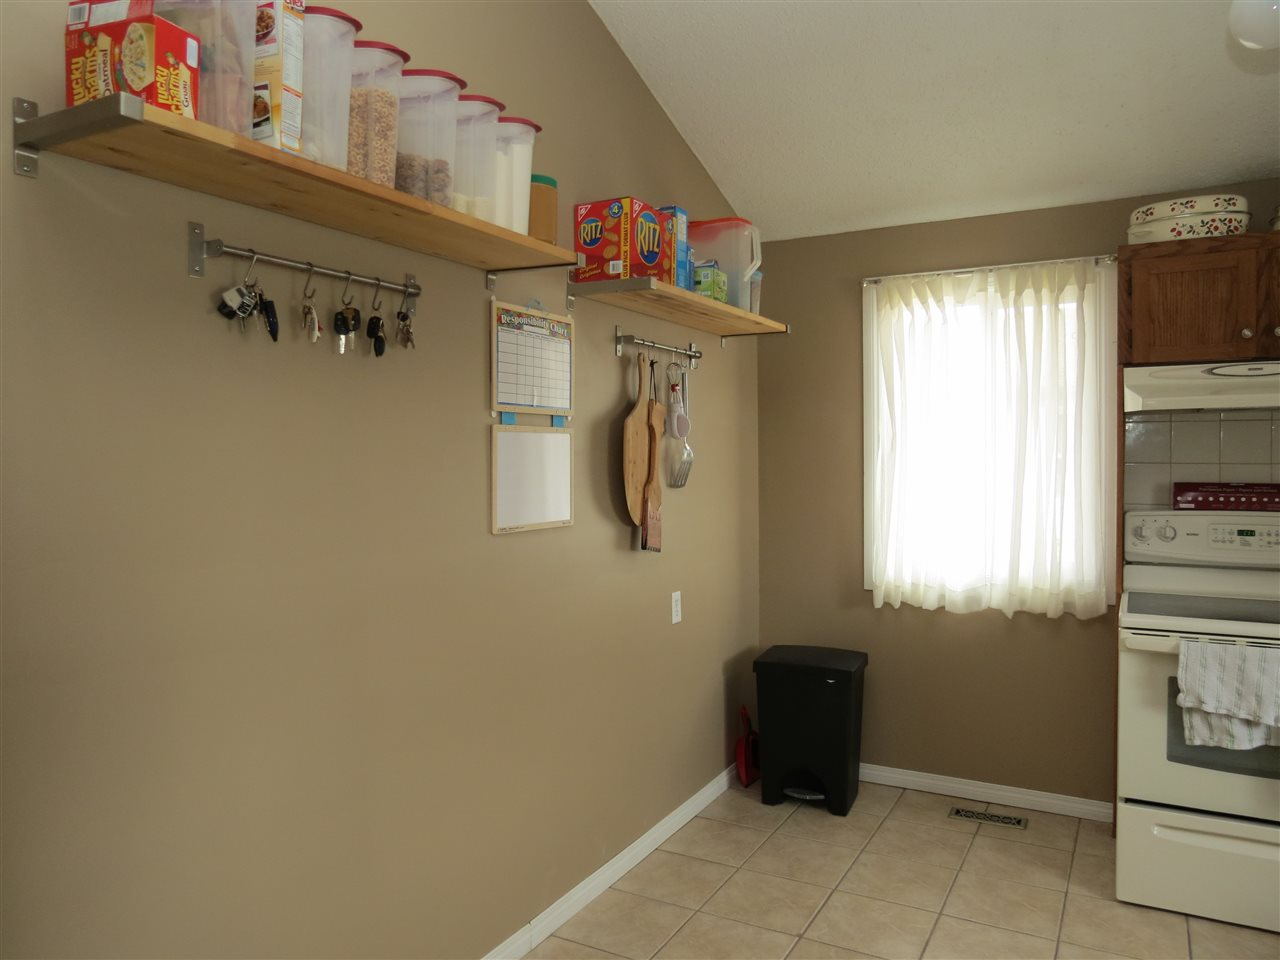 Photo 5: 9907 90 Street: Morinville House for sale : MLS(r) # E4057678